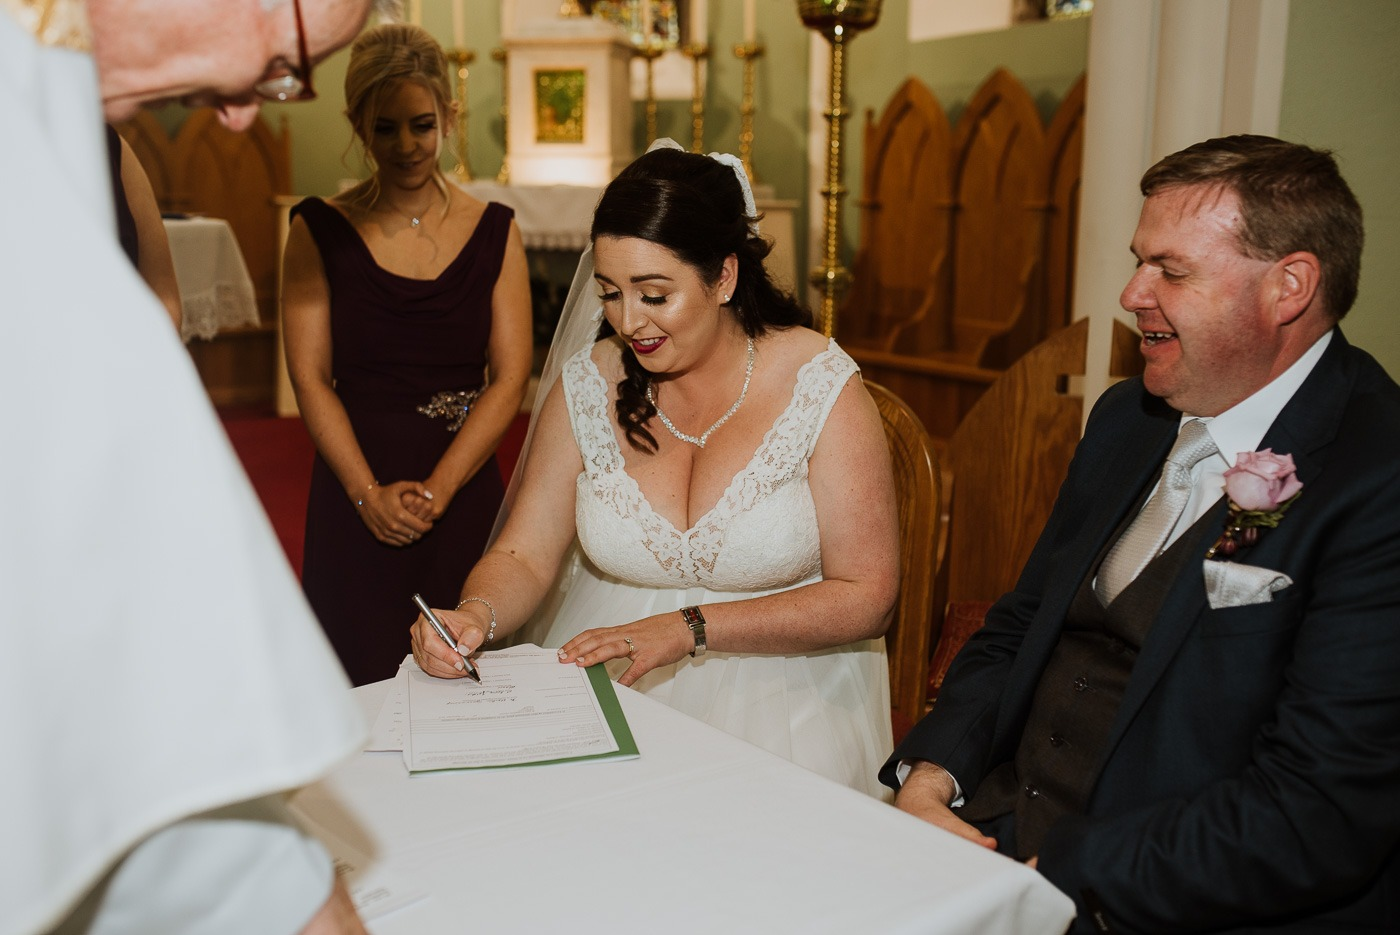 A couple of people that are cutting a wedding cake